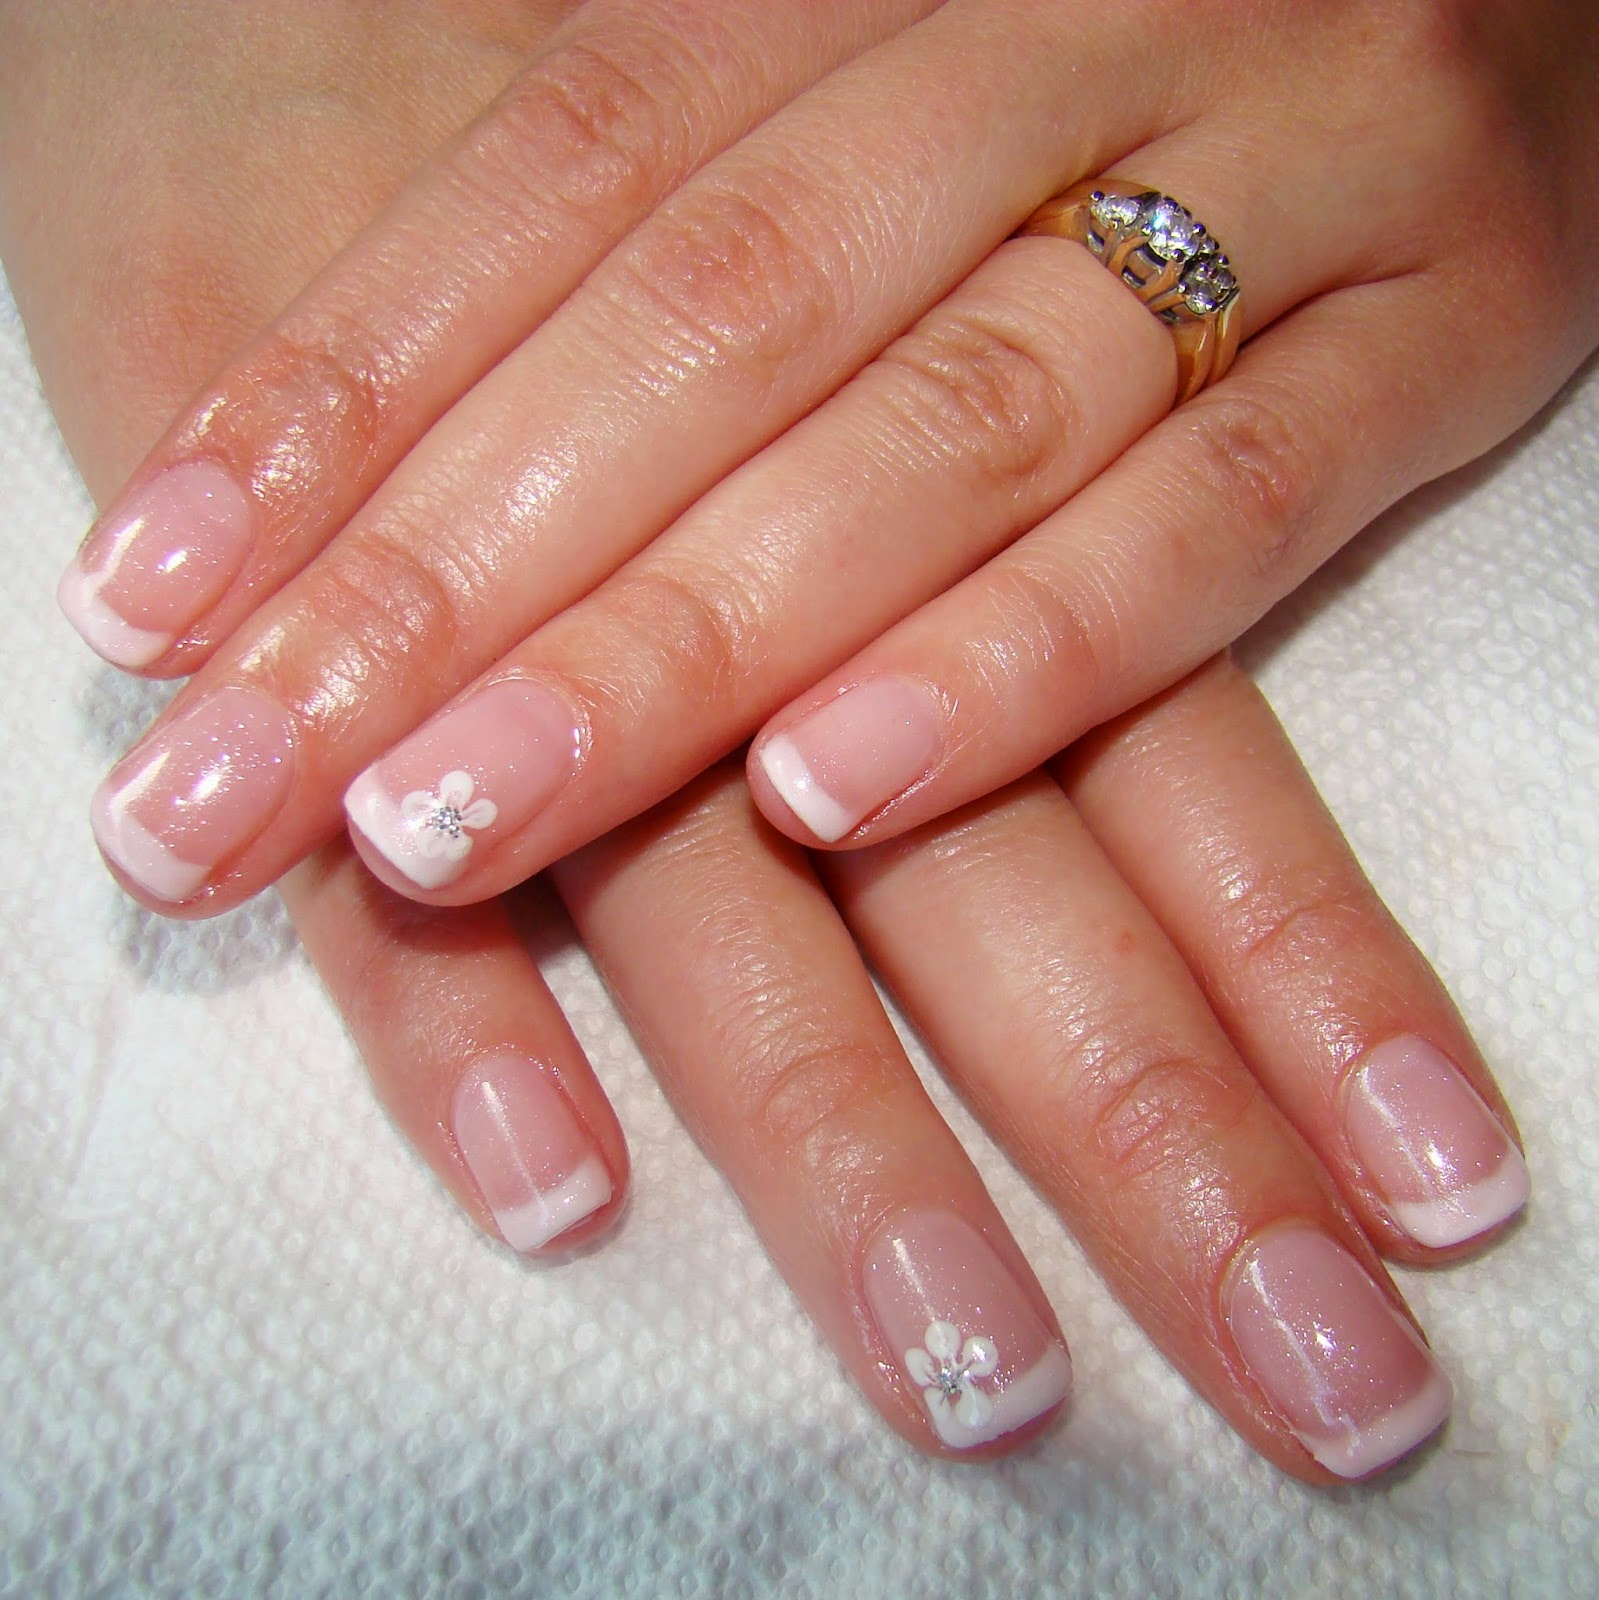 Pretty Nails and Tea: French Manicure using Fingerpaints Soak-Off ...